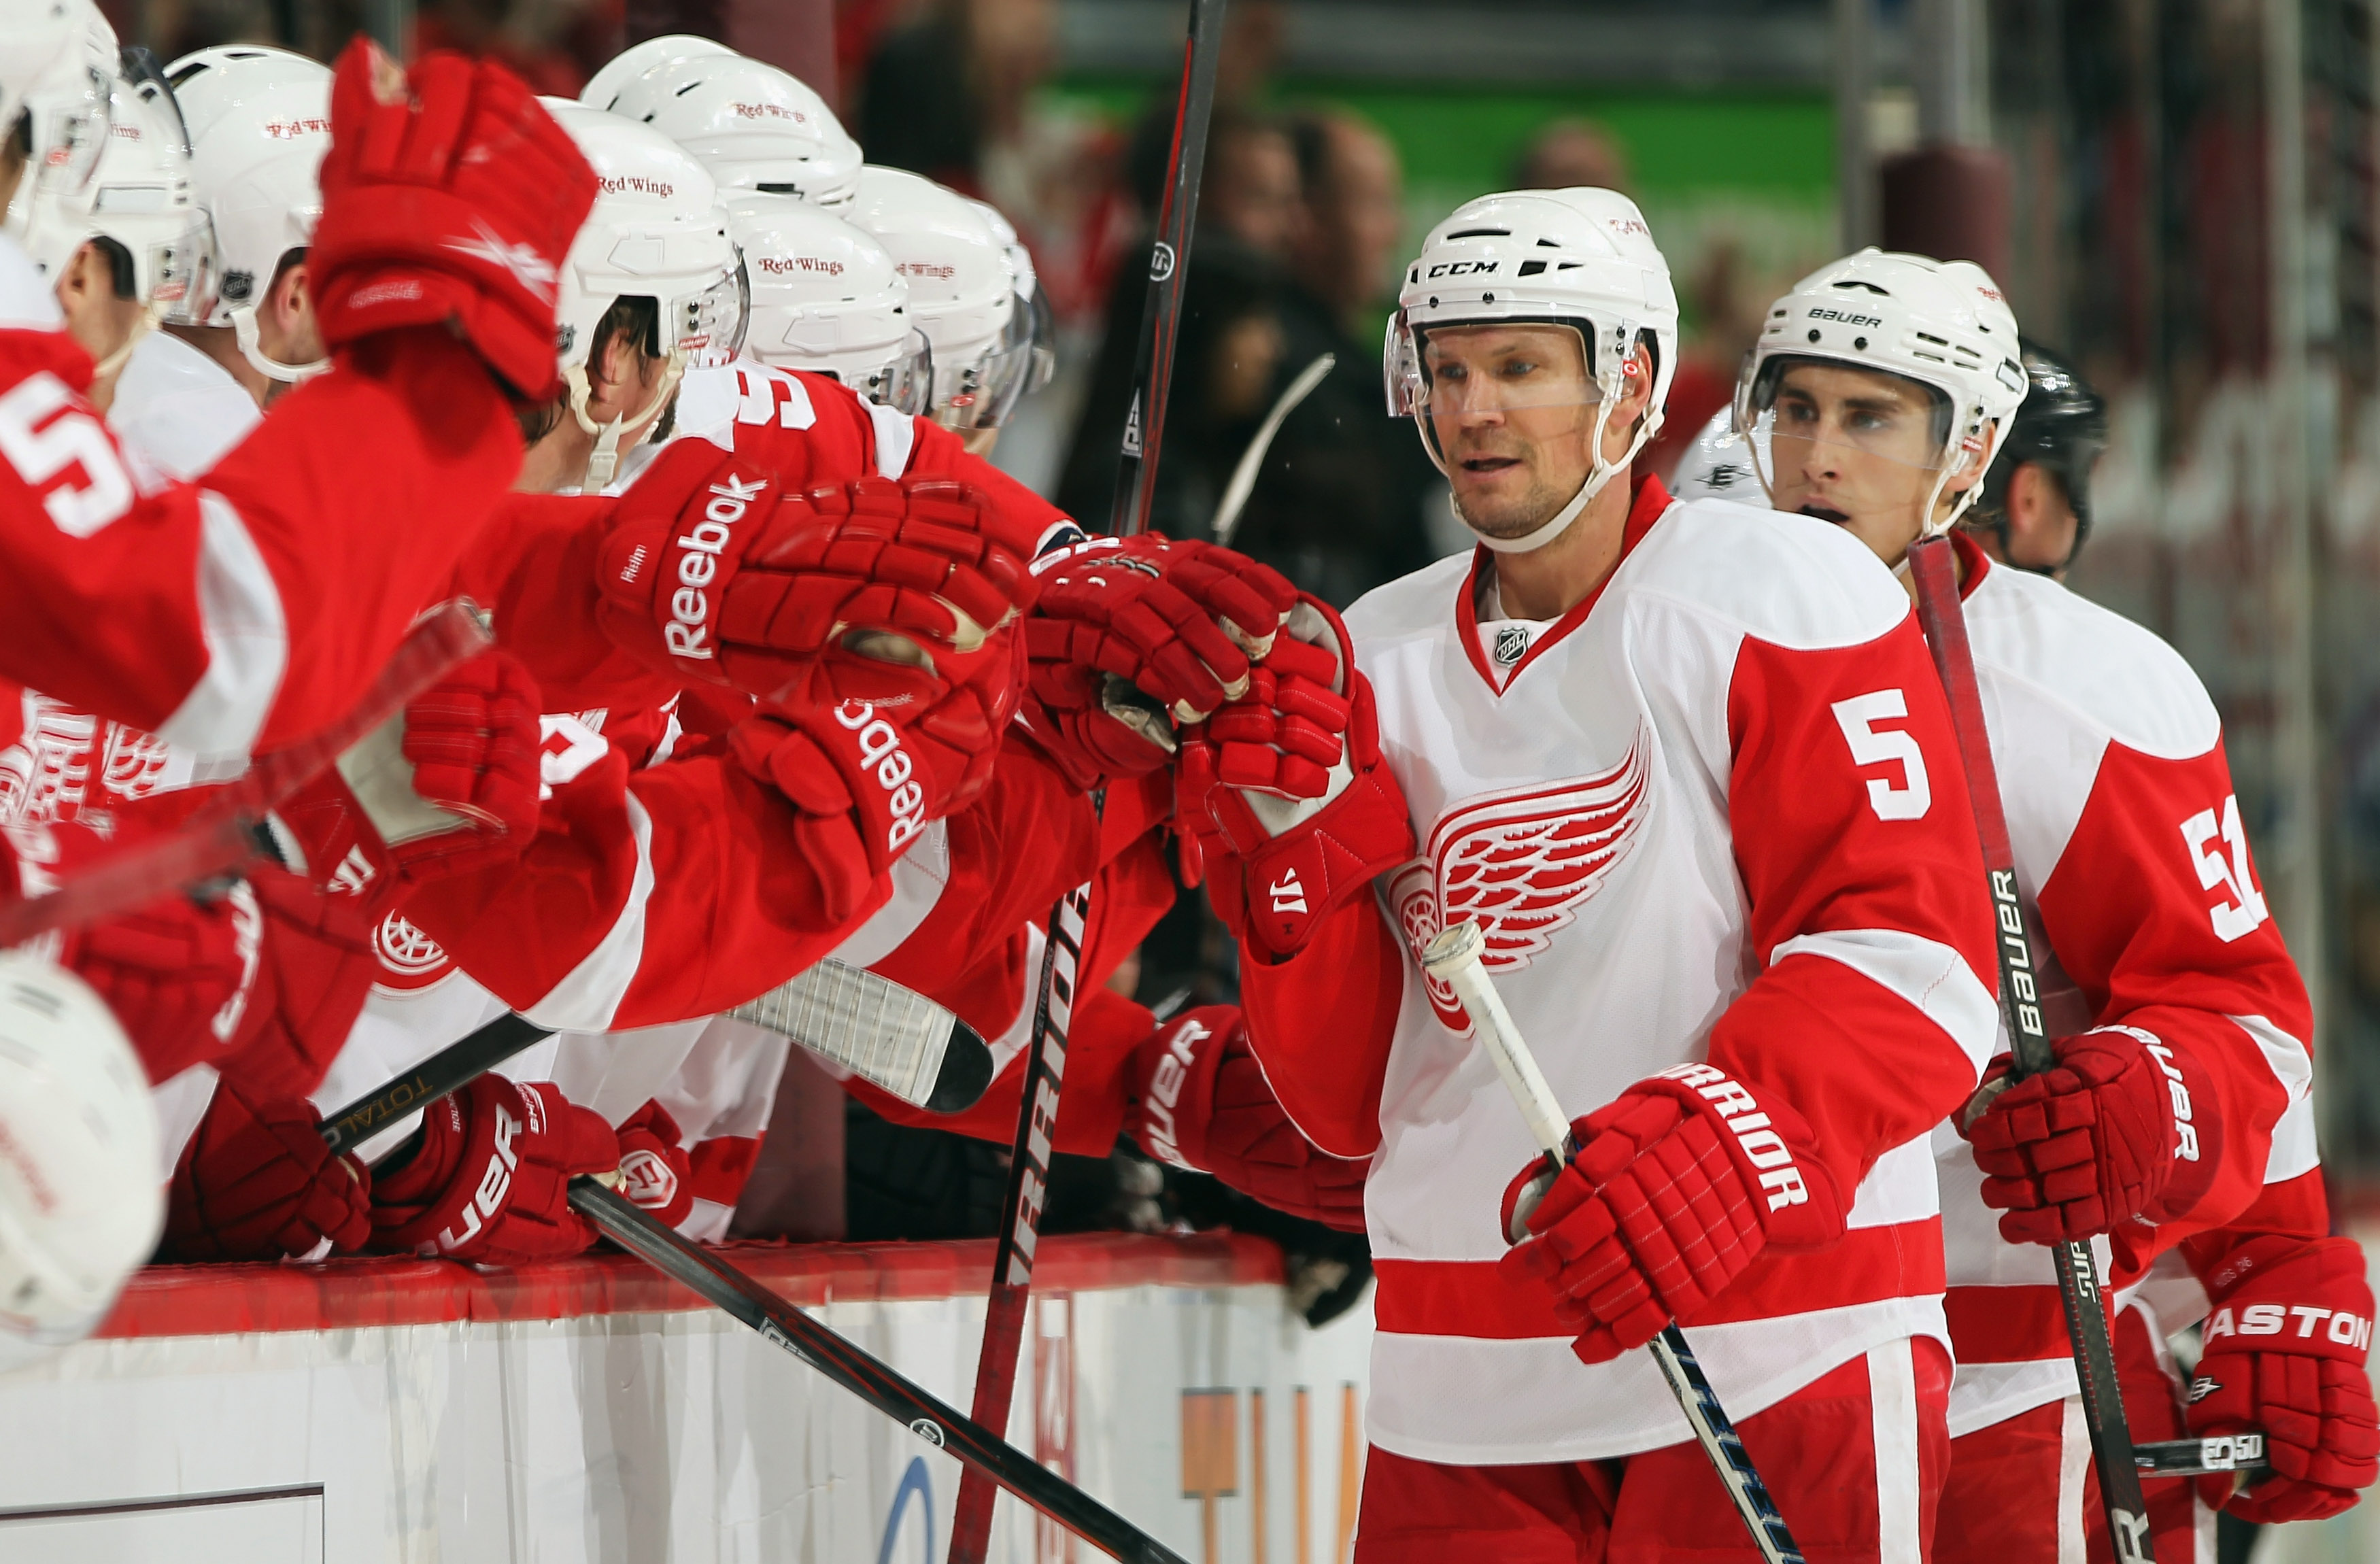 DENVER - DECEMBER 27:  Nicklas Lidstrom #5 of the Detroit Red Wings celebrates his third period goal with his bench against the Colorado Avalanche looks on at the Pepsi Center on December 27, 2010 in Denver, Colorado. The Red Wings defeated the Avalanche